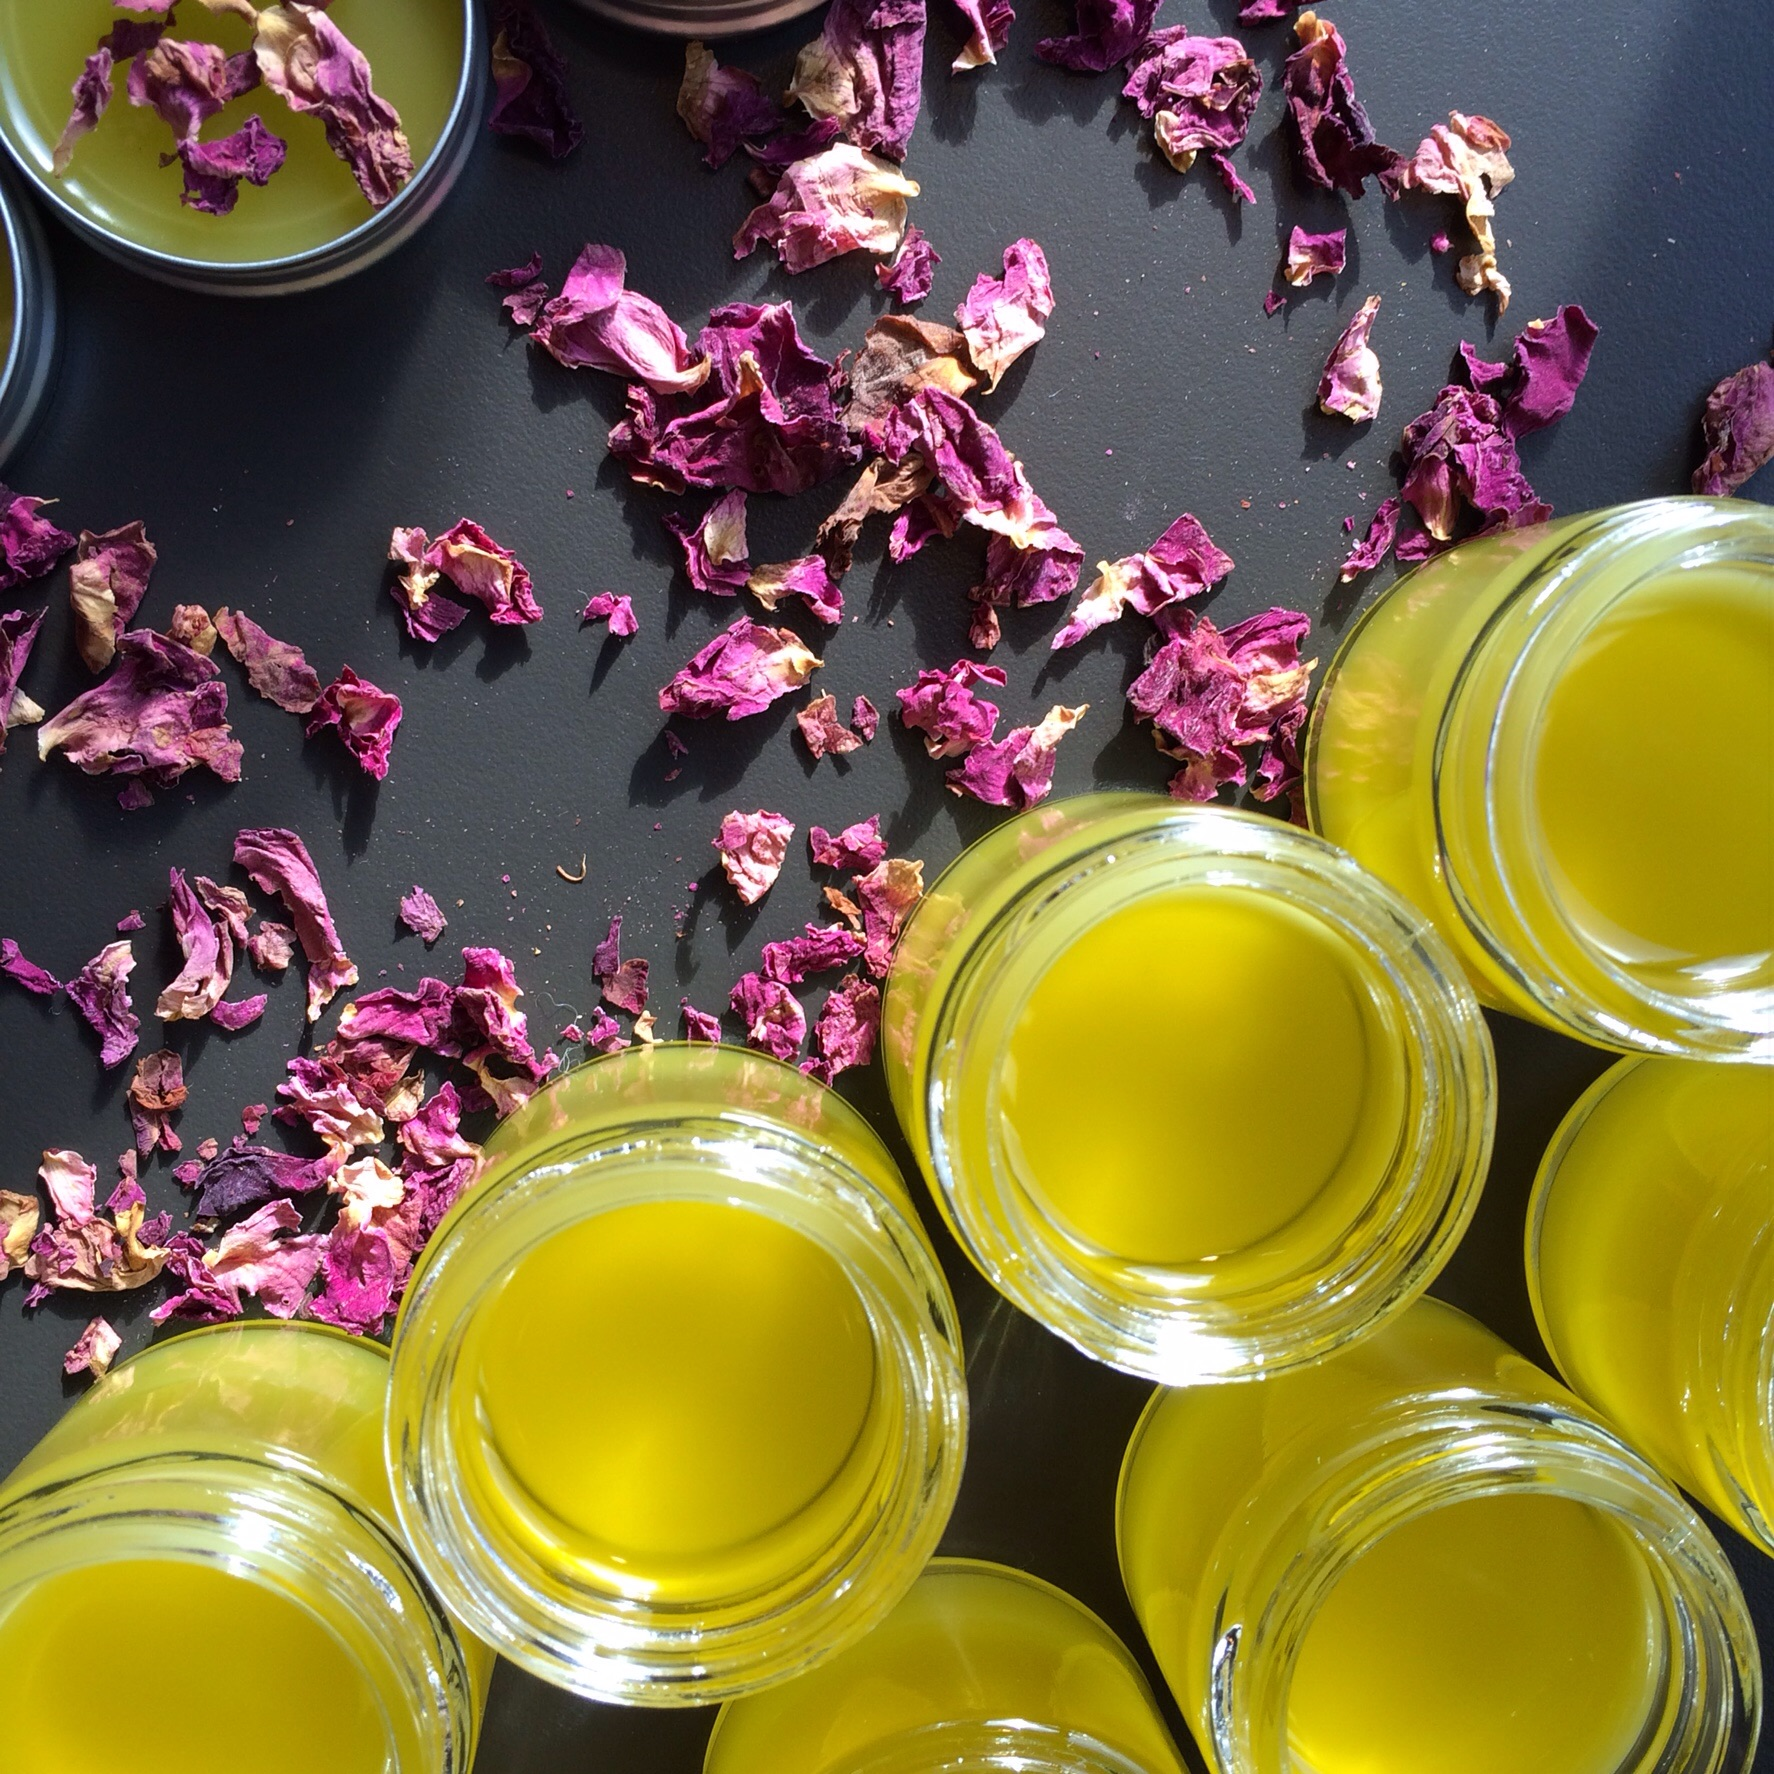 Roses & Honey Salve also comes in 1 oz glass jars without rose petals